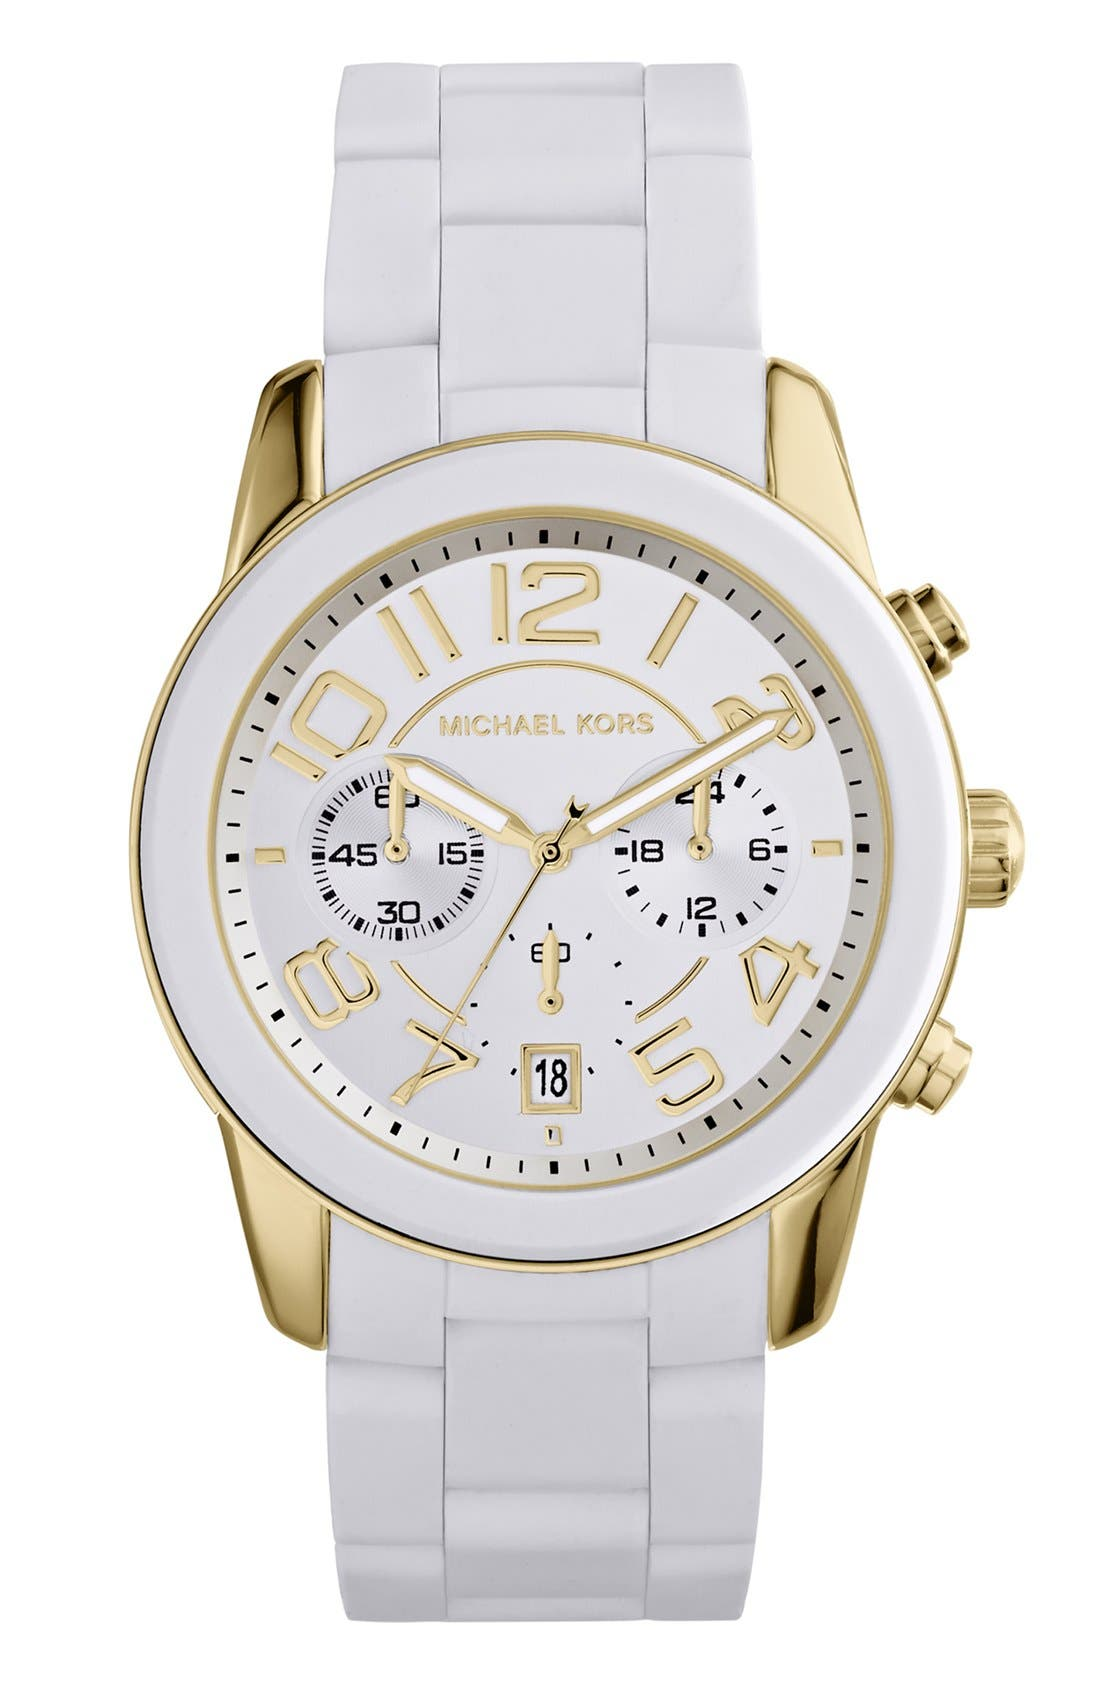 Main Image - Michael Kors 'Mercer' Chronograph Silicone Strap Watch, 42mm